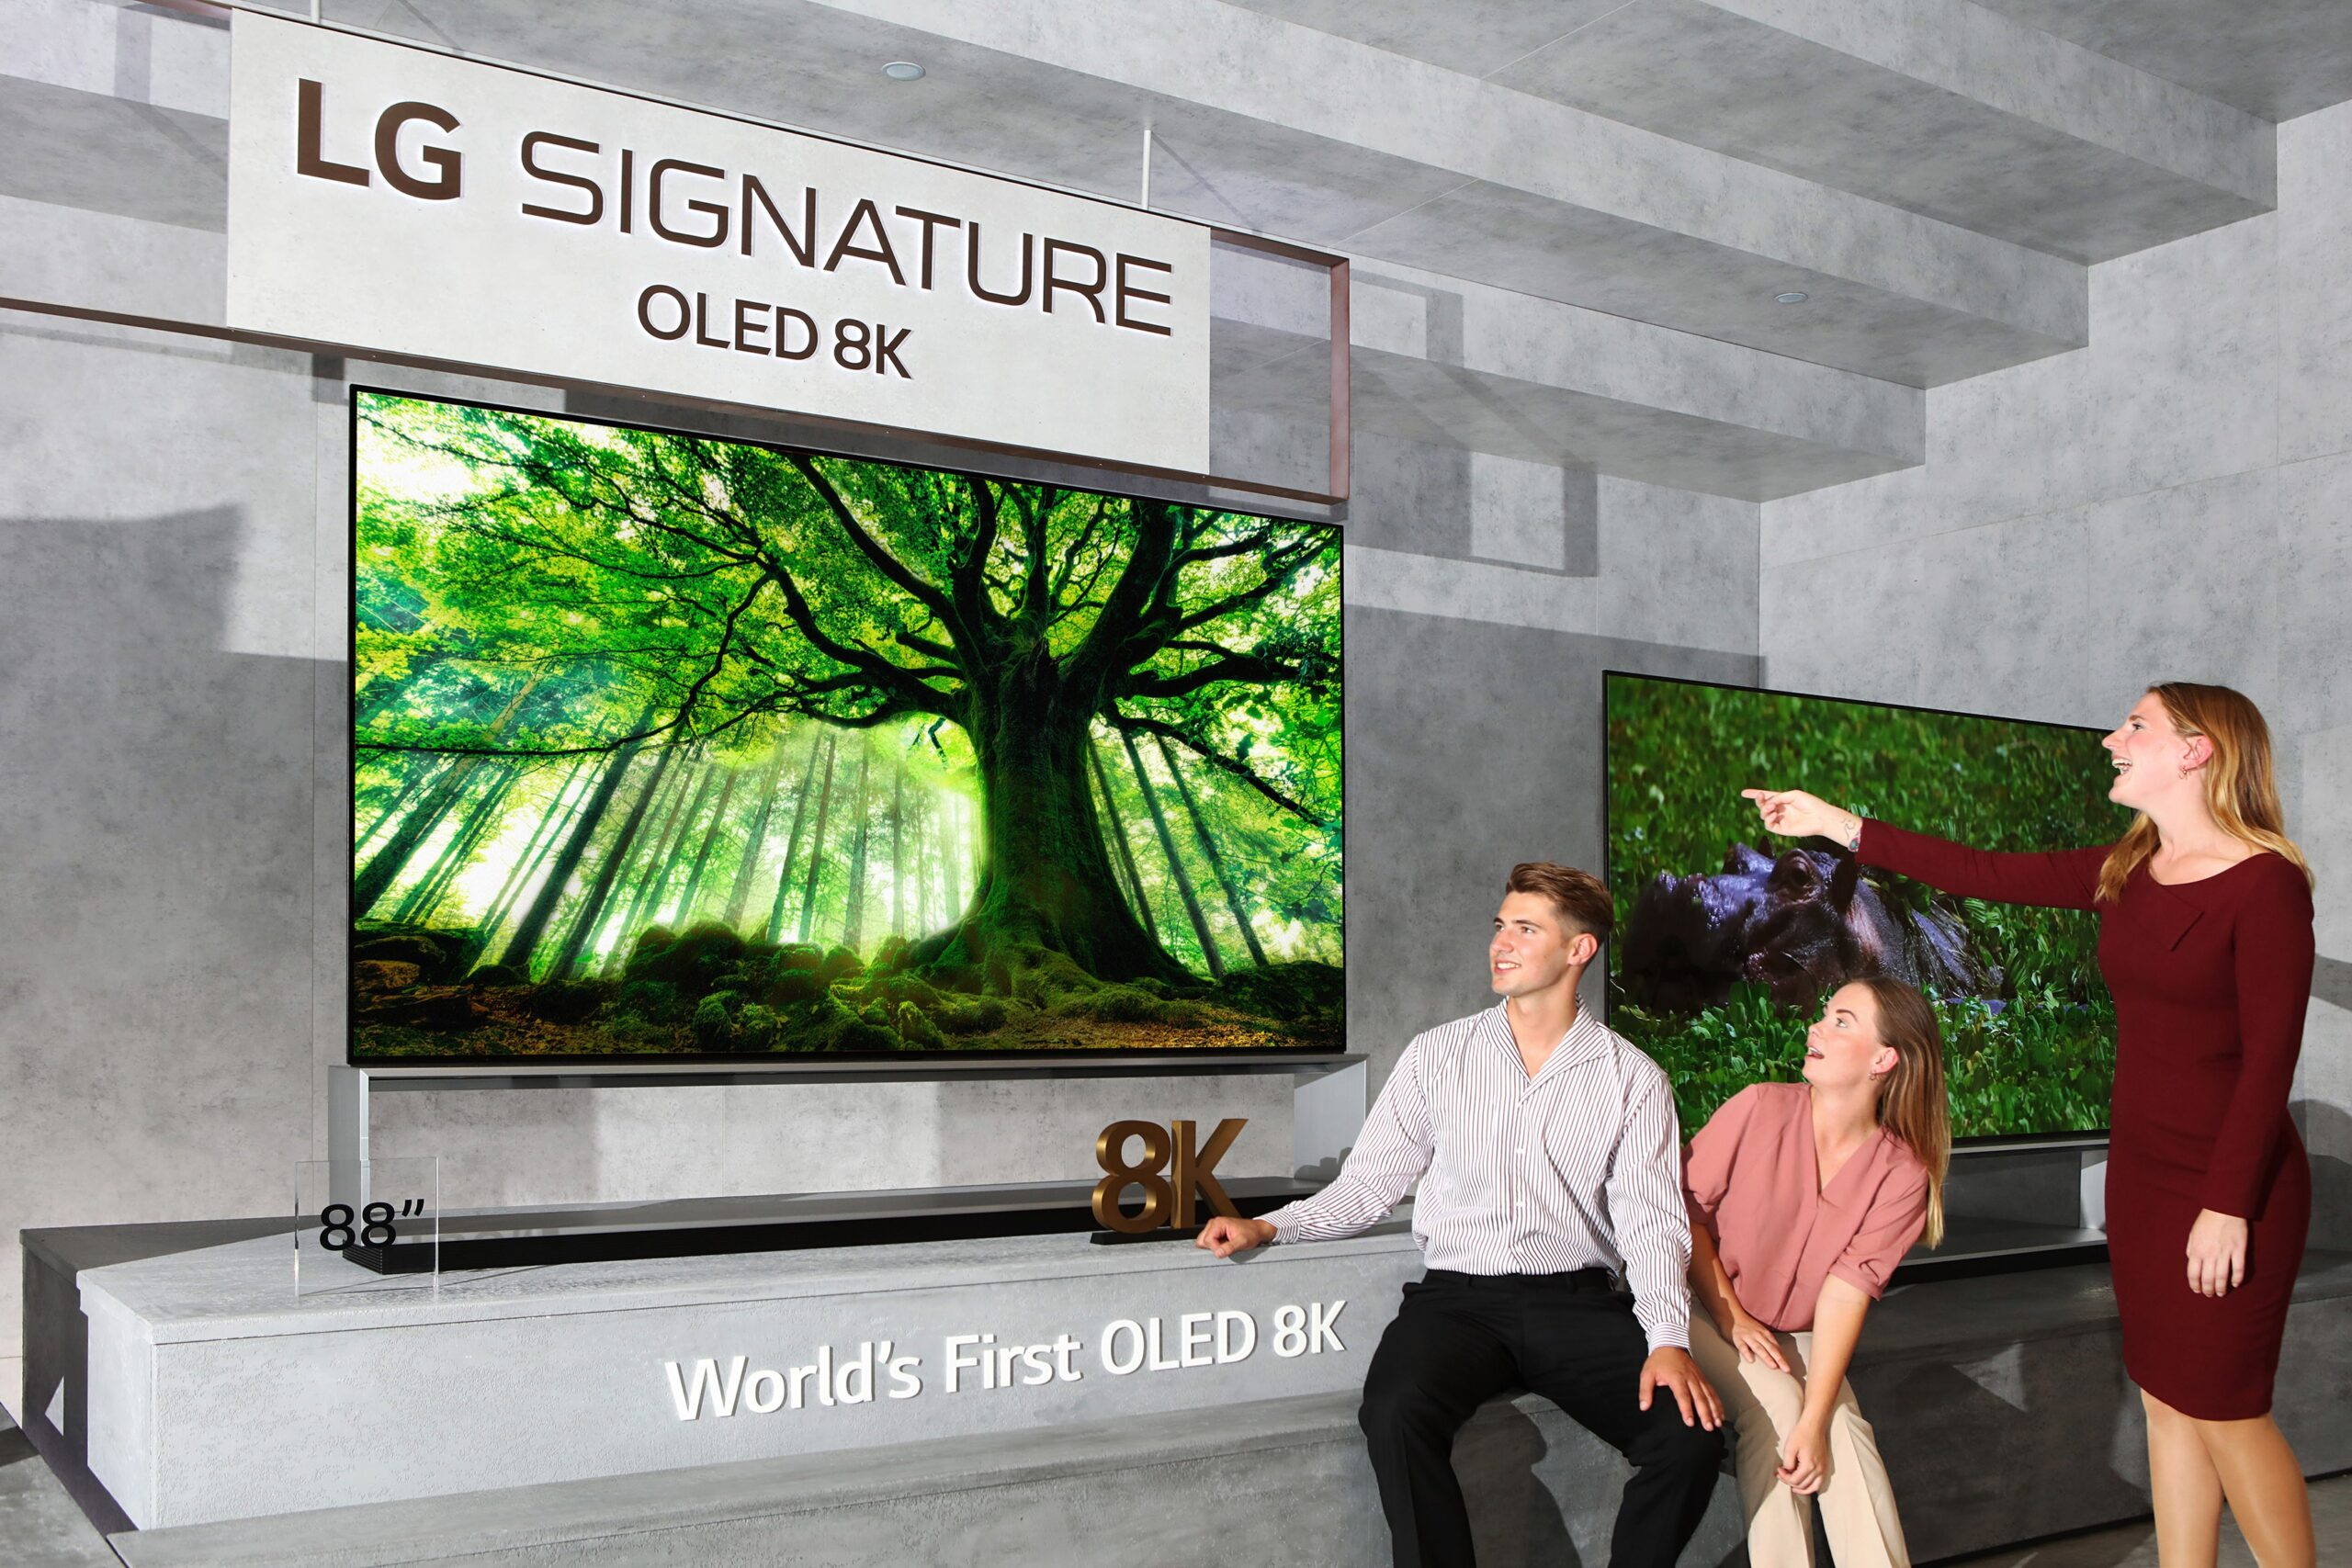 Three models admiring the LG SIGNATURE OLED 8K TV while it displays an enormous tree